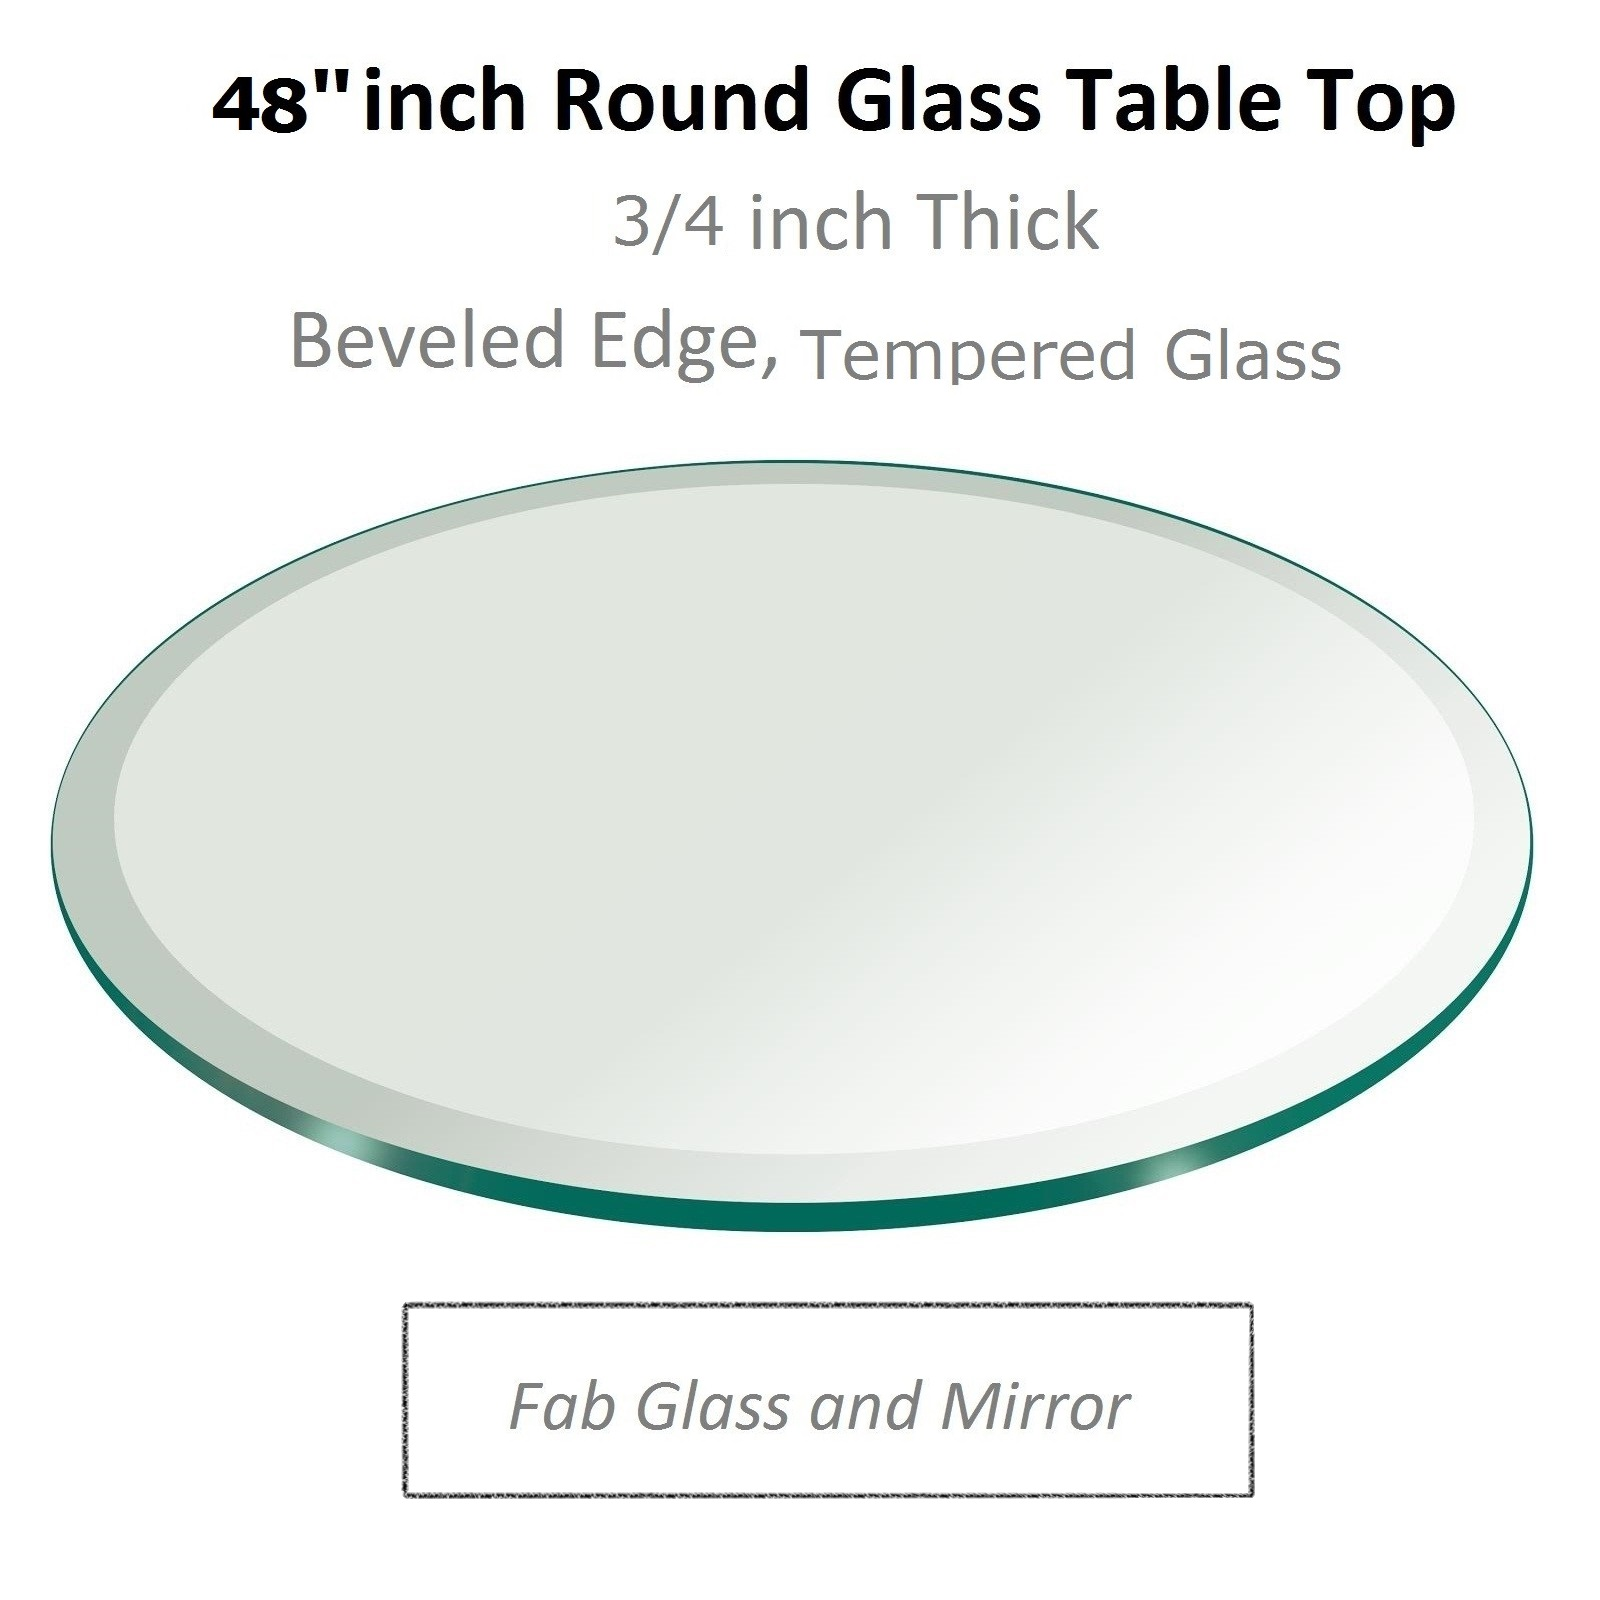 48 inch glass table top for perfect placement at dining room for 13 inch round glass table top